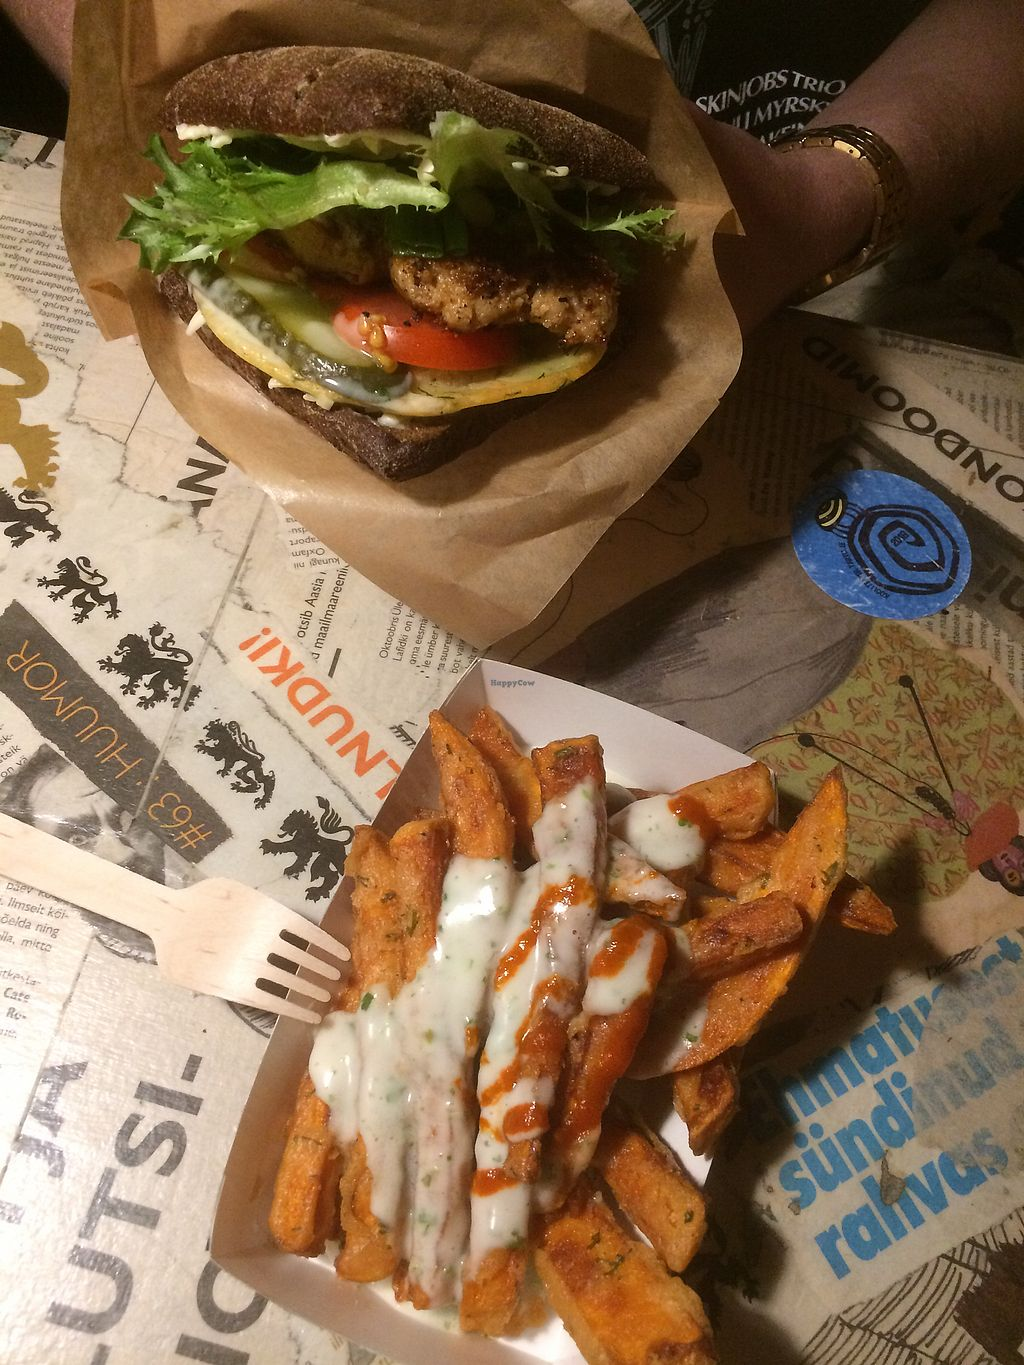 """Photo of Genialistide Klubi  by <a href=""""/members/profile/J%C3%A4n%C3%B6nen"""">Jänönen</a> <br/>Yummy burger and sweet potato fries <br/> May 11, 2018  - <a href='/contact/abuse/image/52021/398370'>Report</a>"""